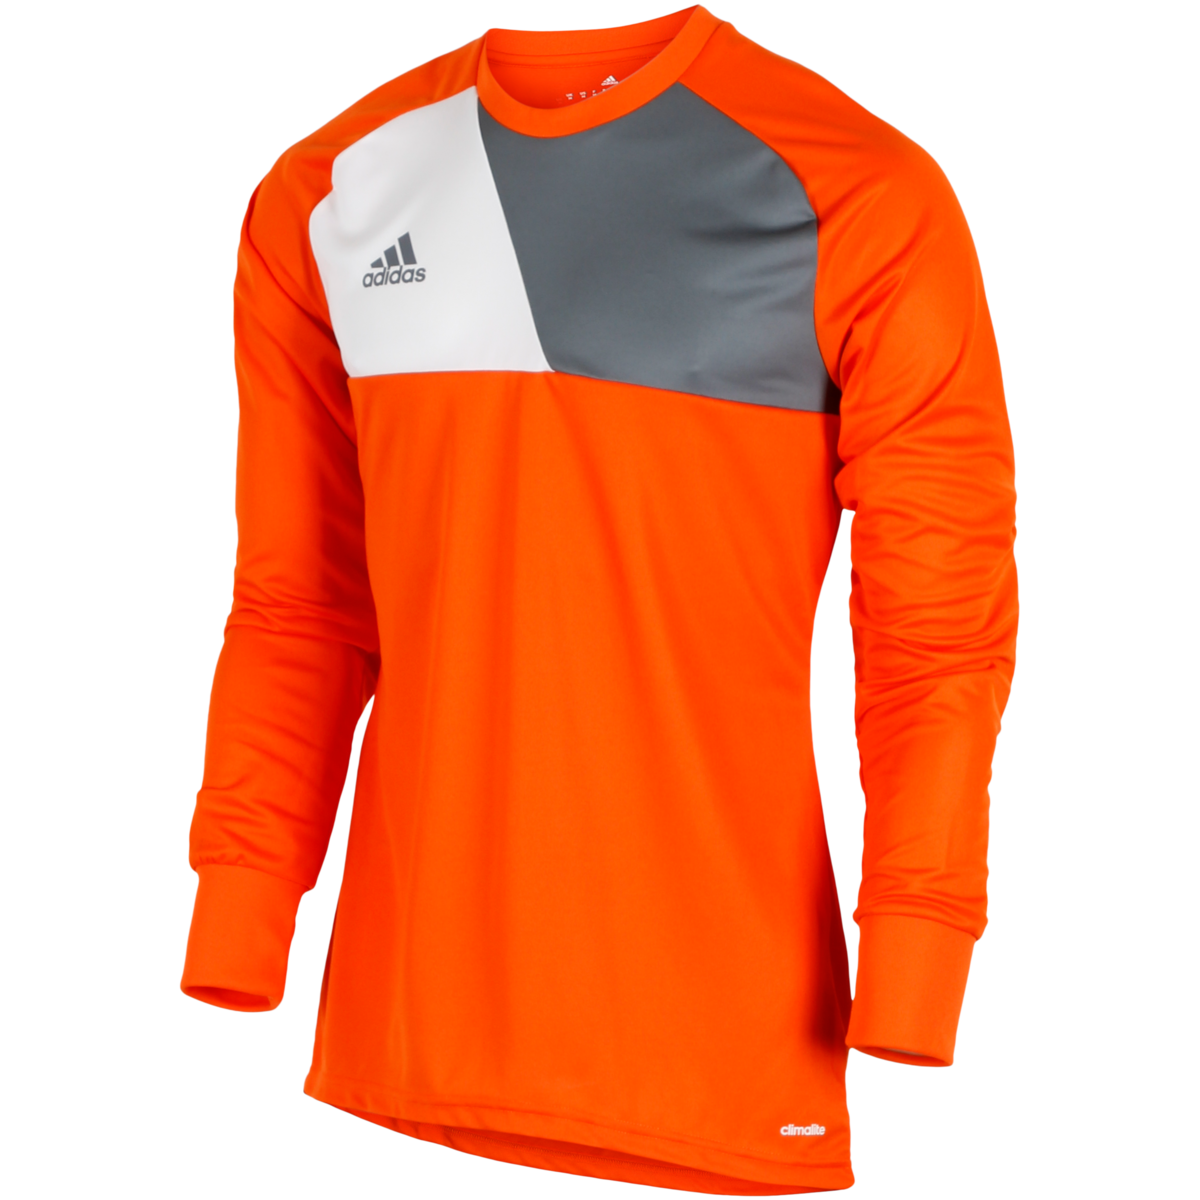 adidas - Assita 17 Målmandstrøje L/Æ - Orange